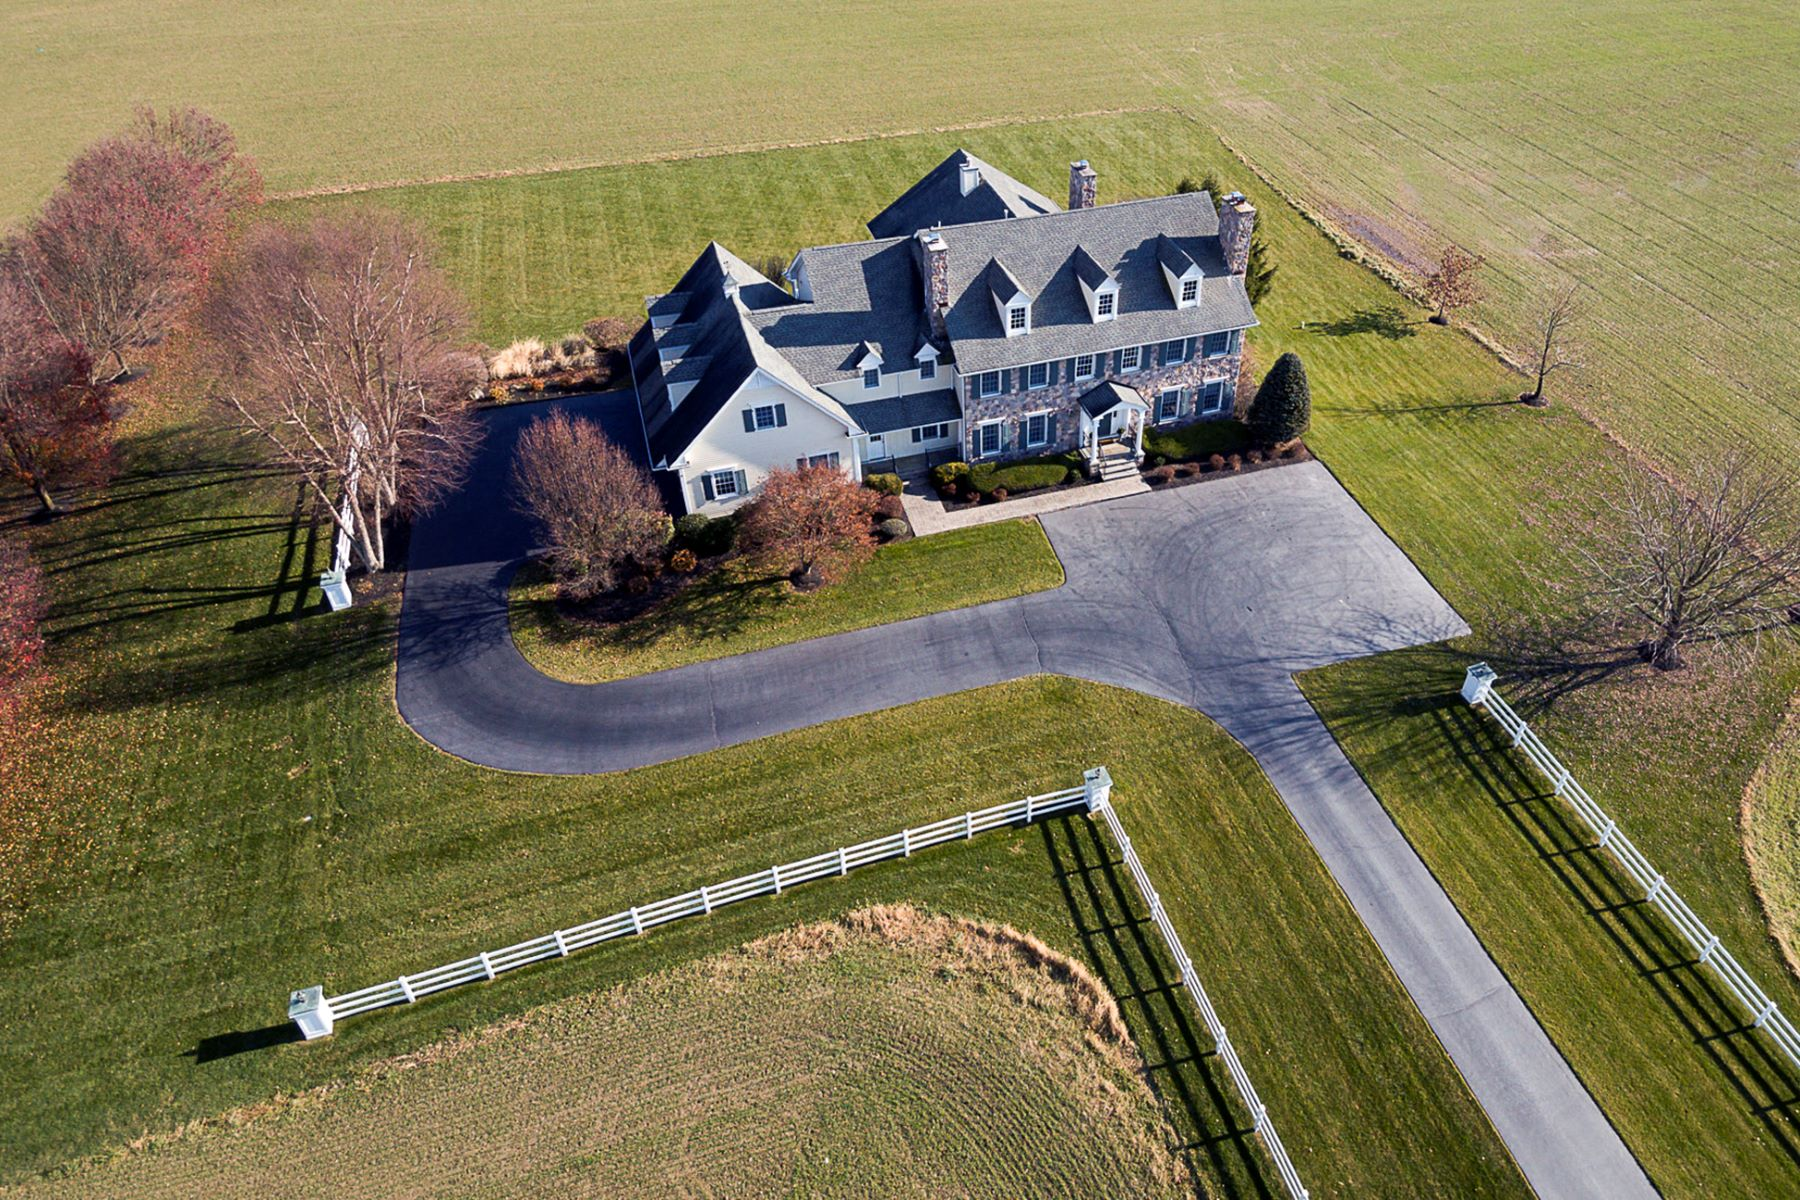 Maison unifamiliale pour l Vente à All The Pleasures Of Refined Country Living 81 Petty Road Cranbury, New Jersey 08512 États-UnisDans/Autour: Cranbury Township